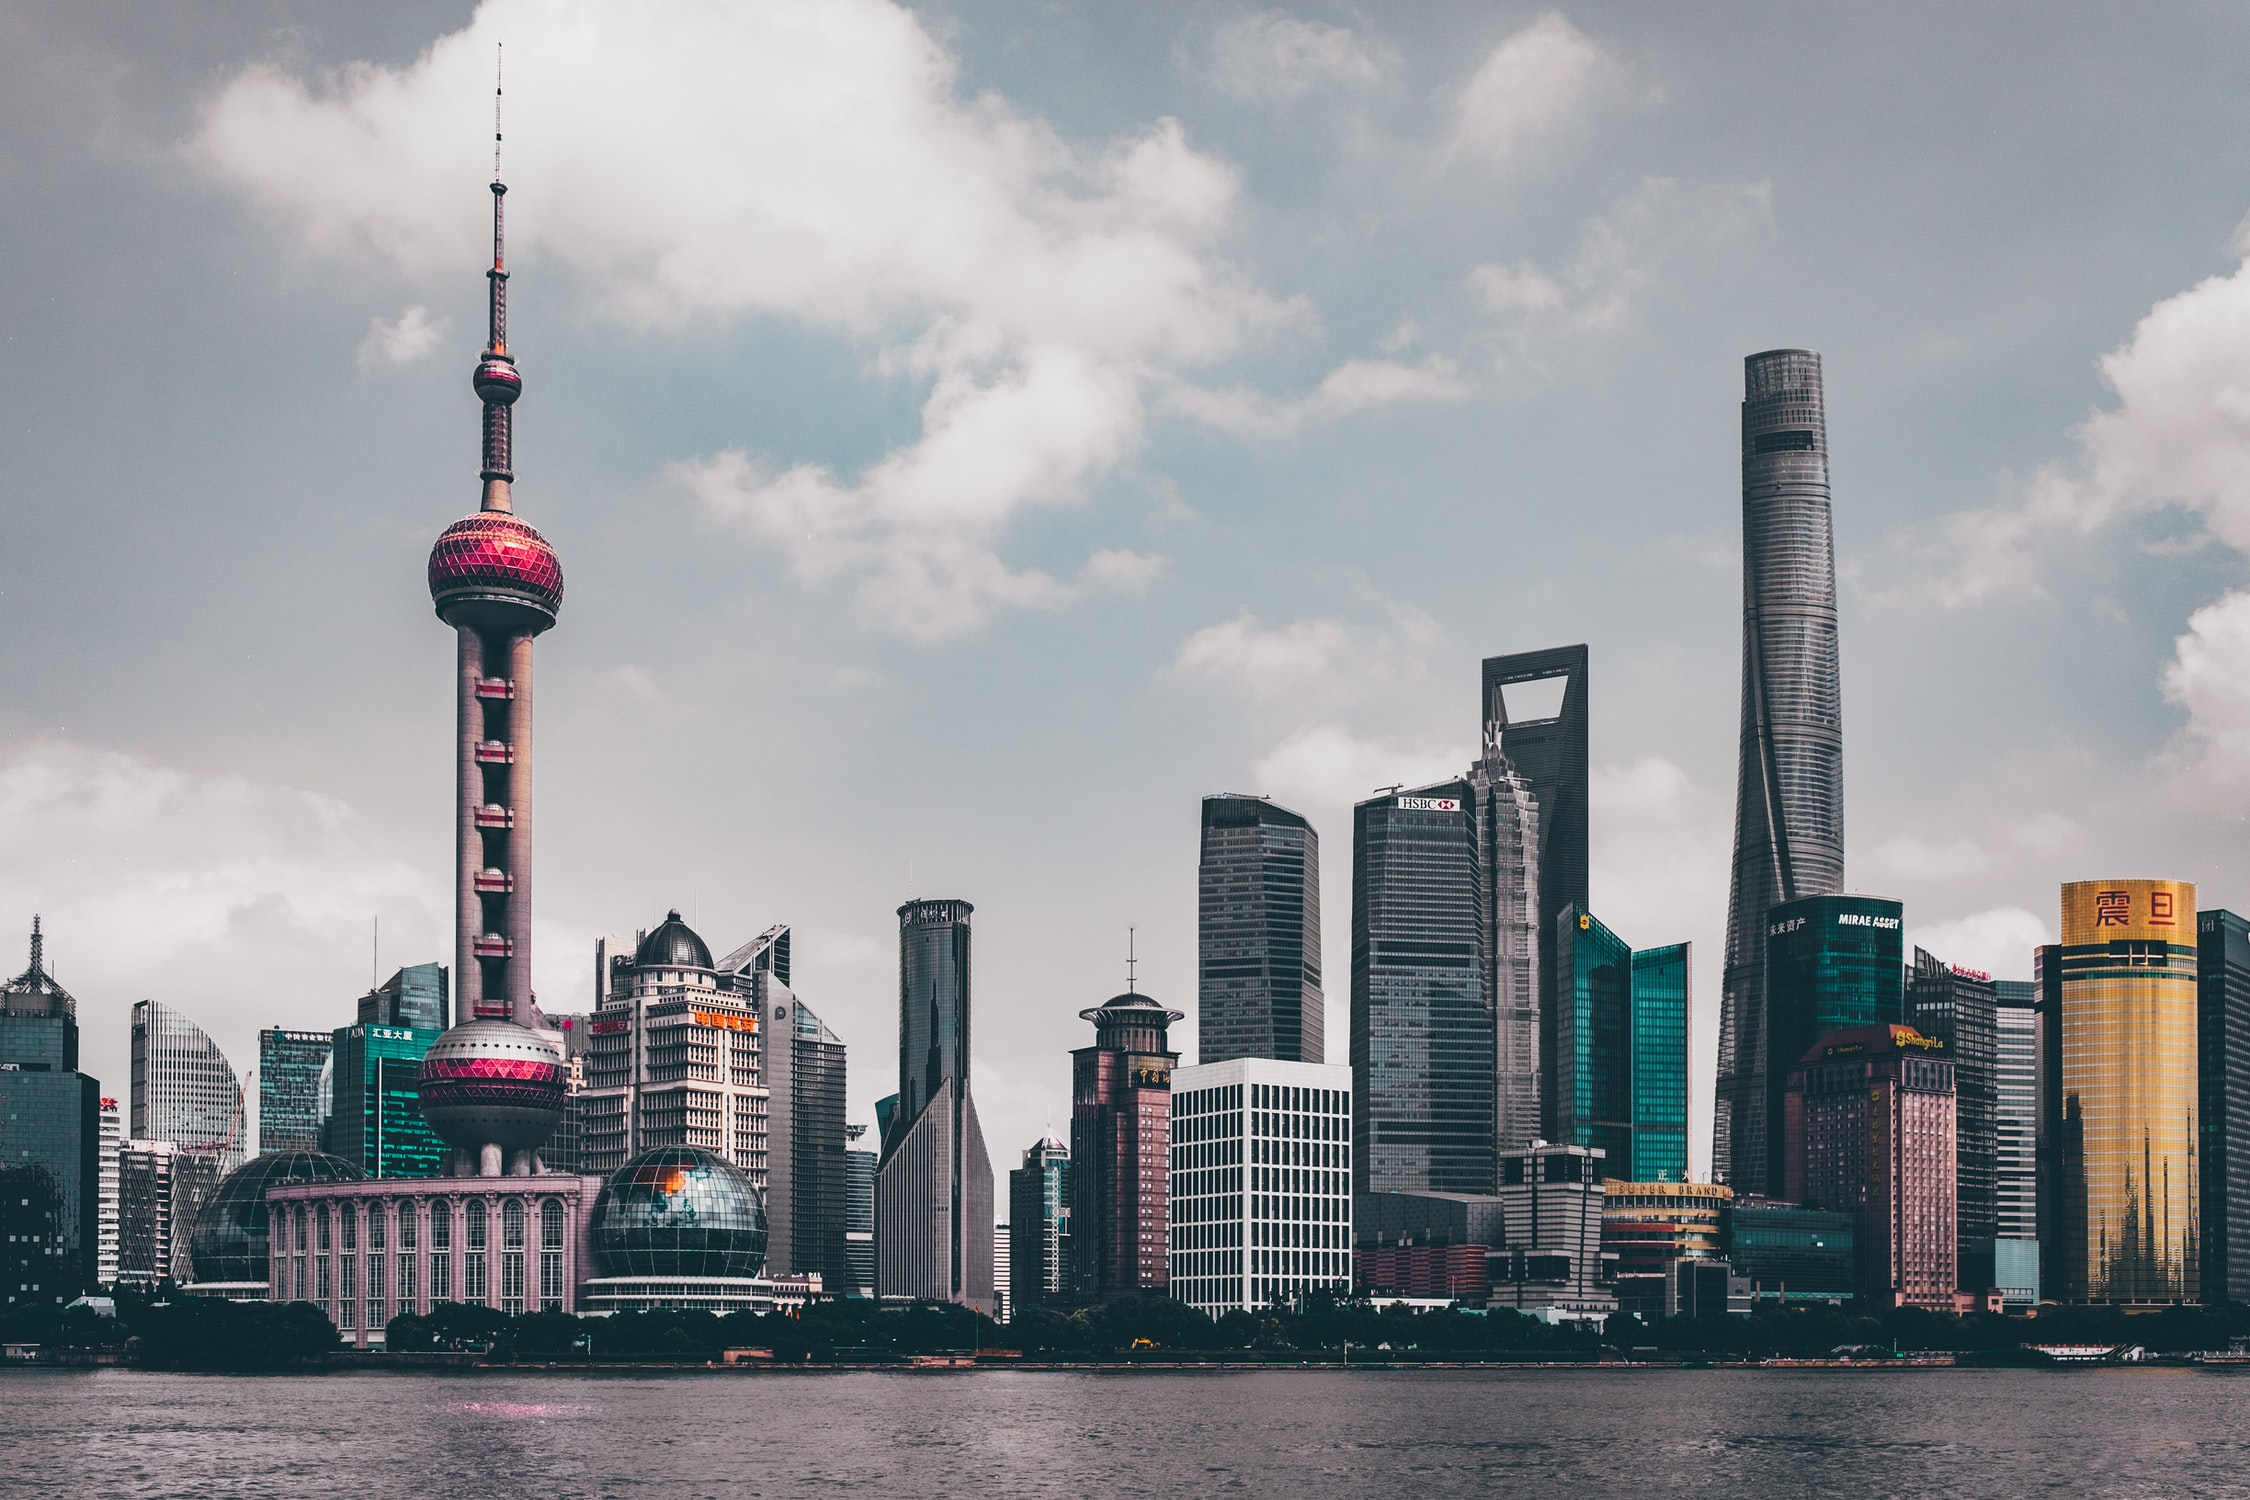 Almost All Chinese Provinces Have Blockchain-Boosting Policies